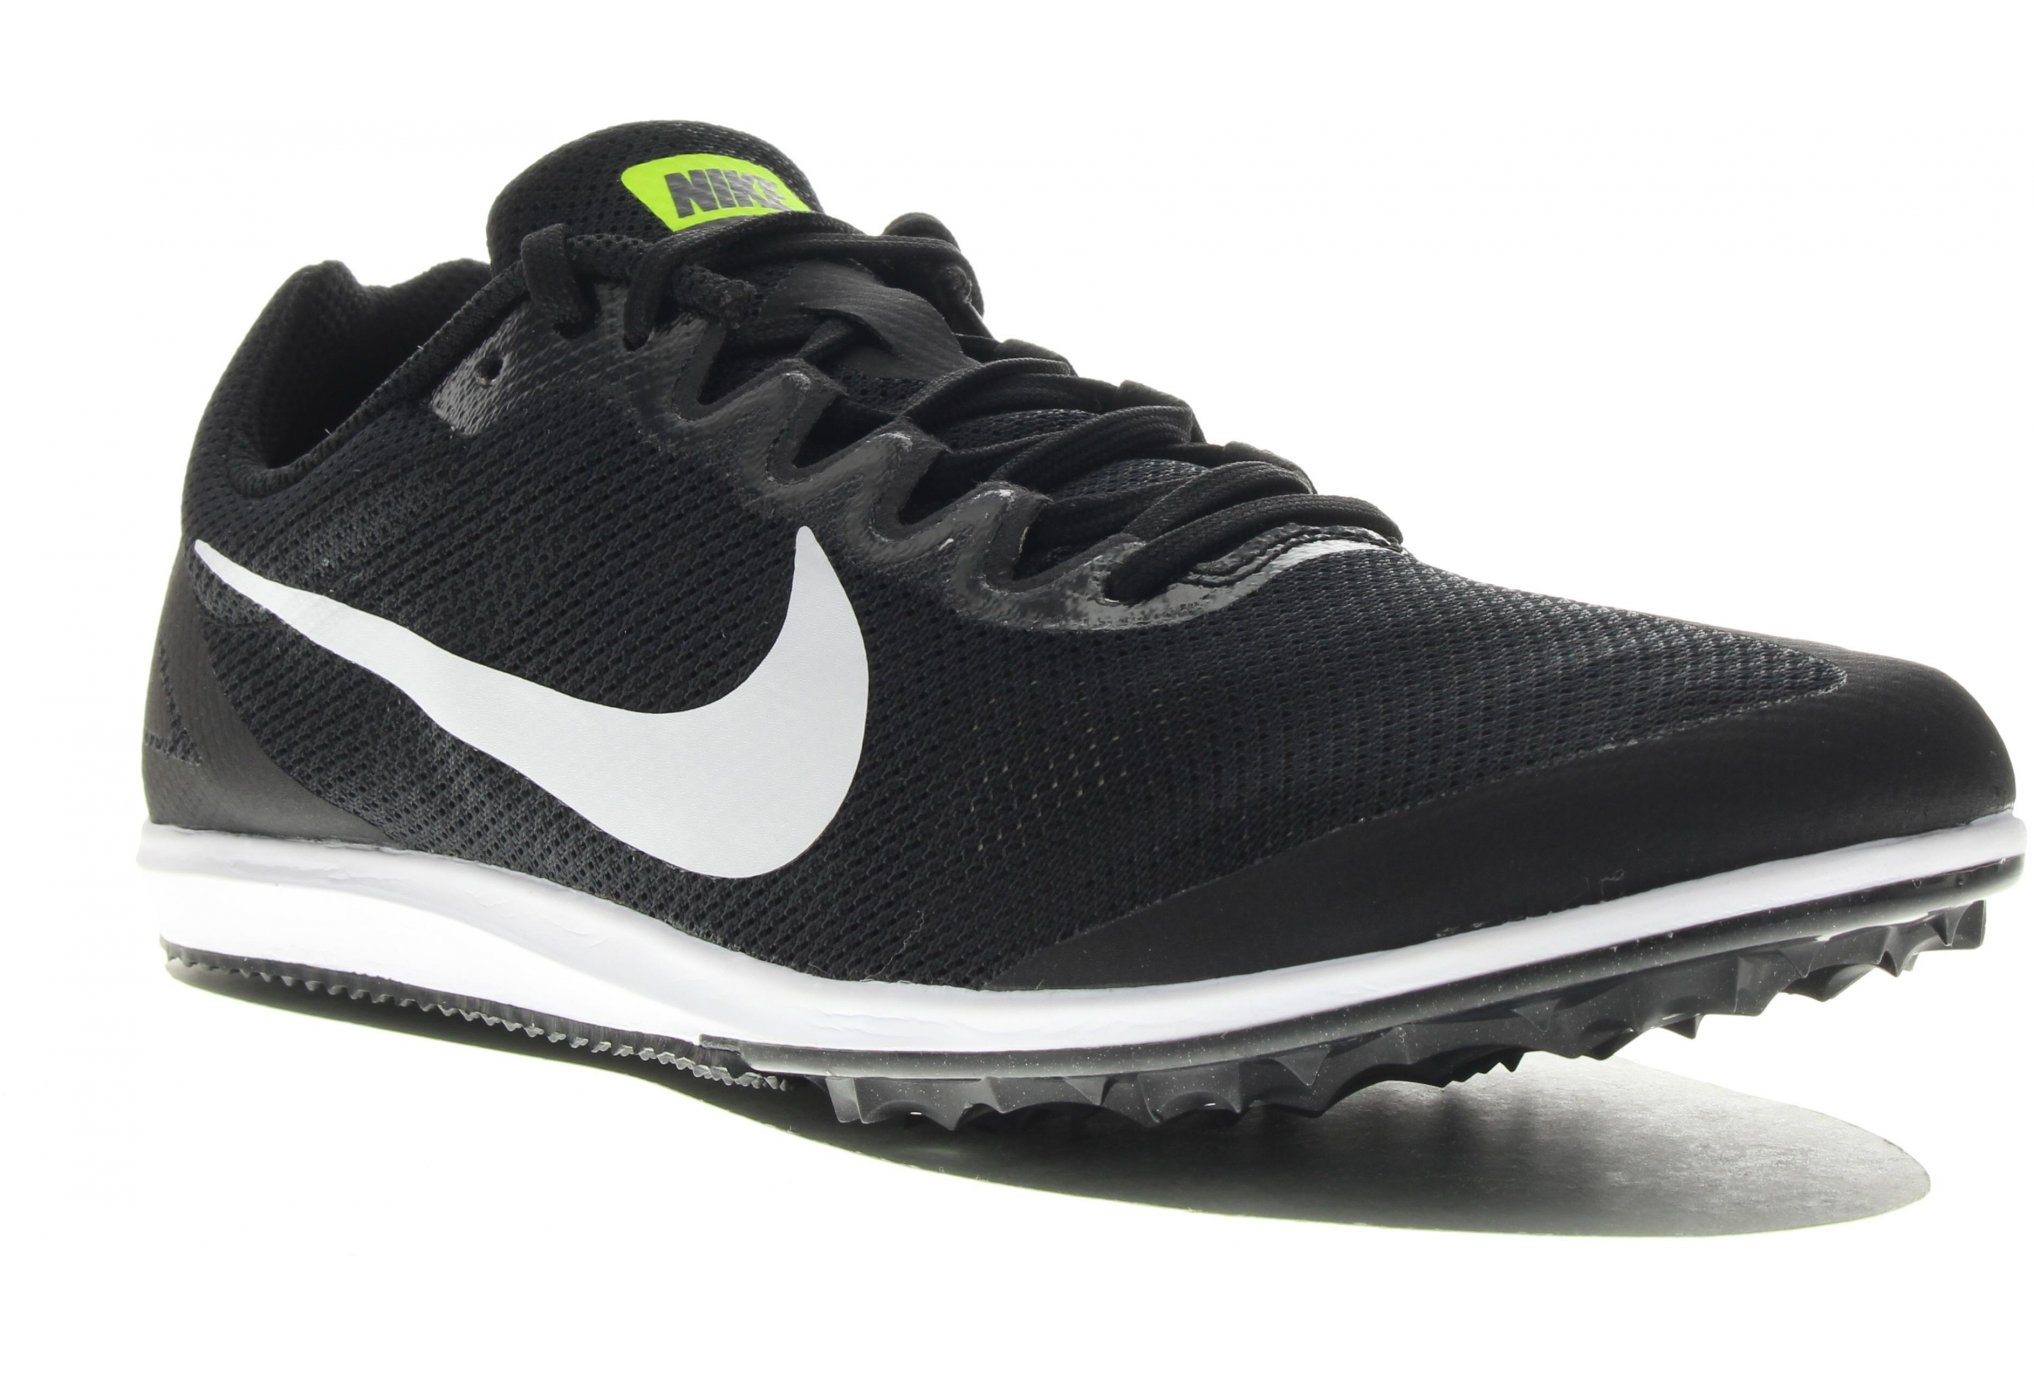 new style fd824 b5846 Nike Zoom Rival D 10 W Chaussures running femme